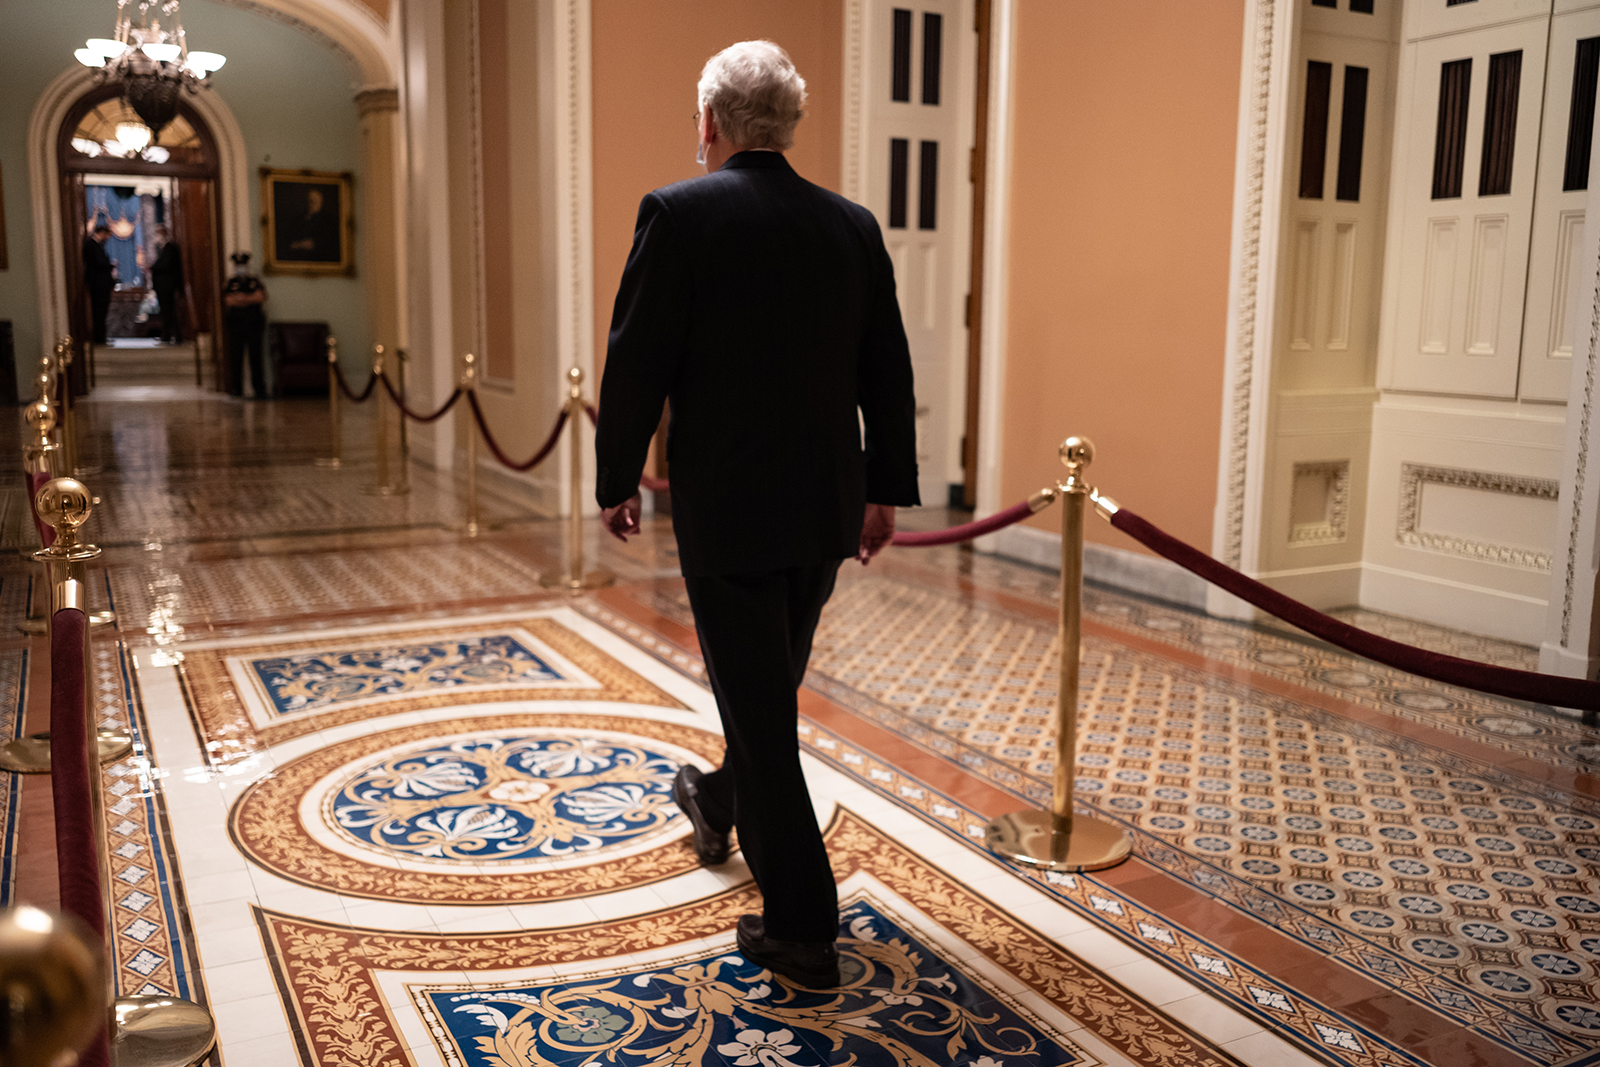 Senate Majority Leader Mitch McConnell walks to the Senate Floor at the US Capitol on December 21, in Washington, DC.